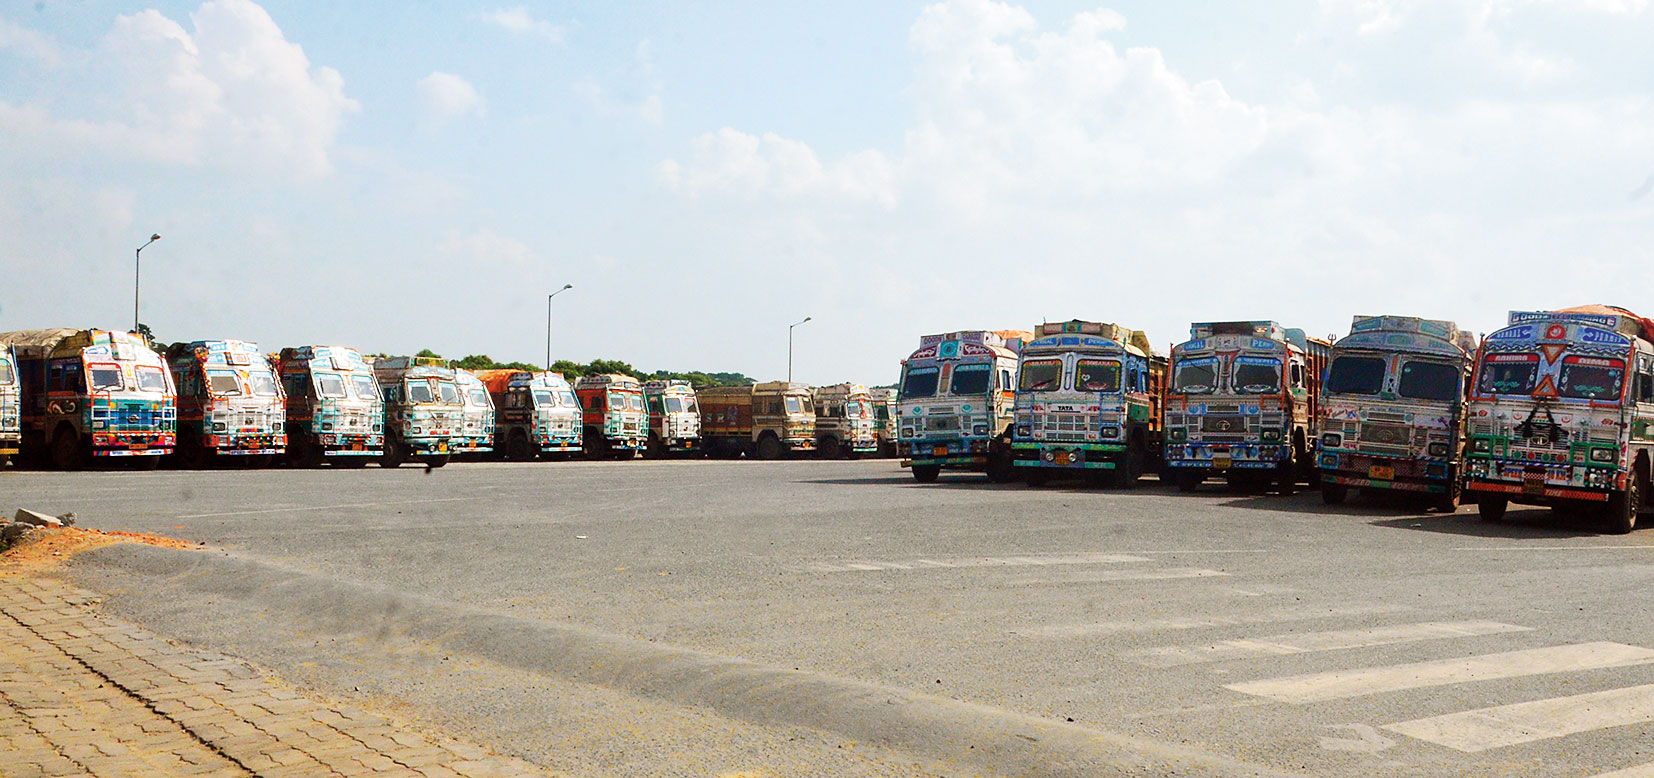 Some of the Indian trucks stranded in Petrapole.